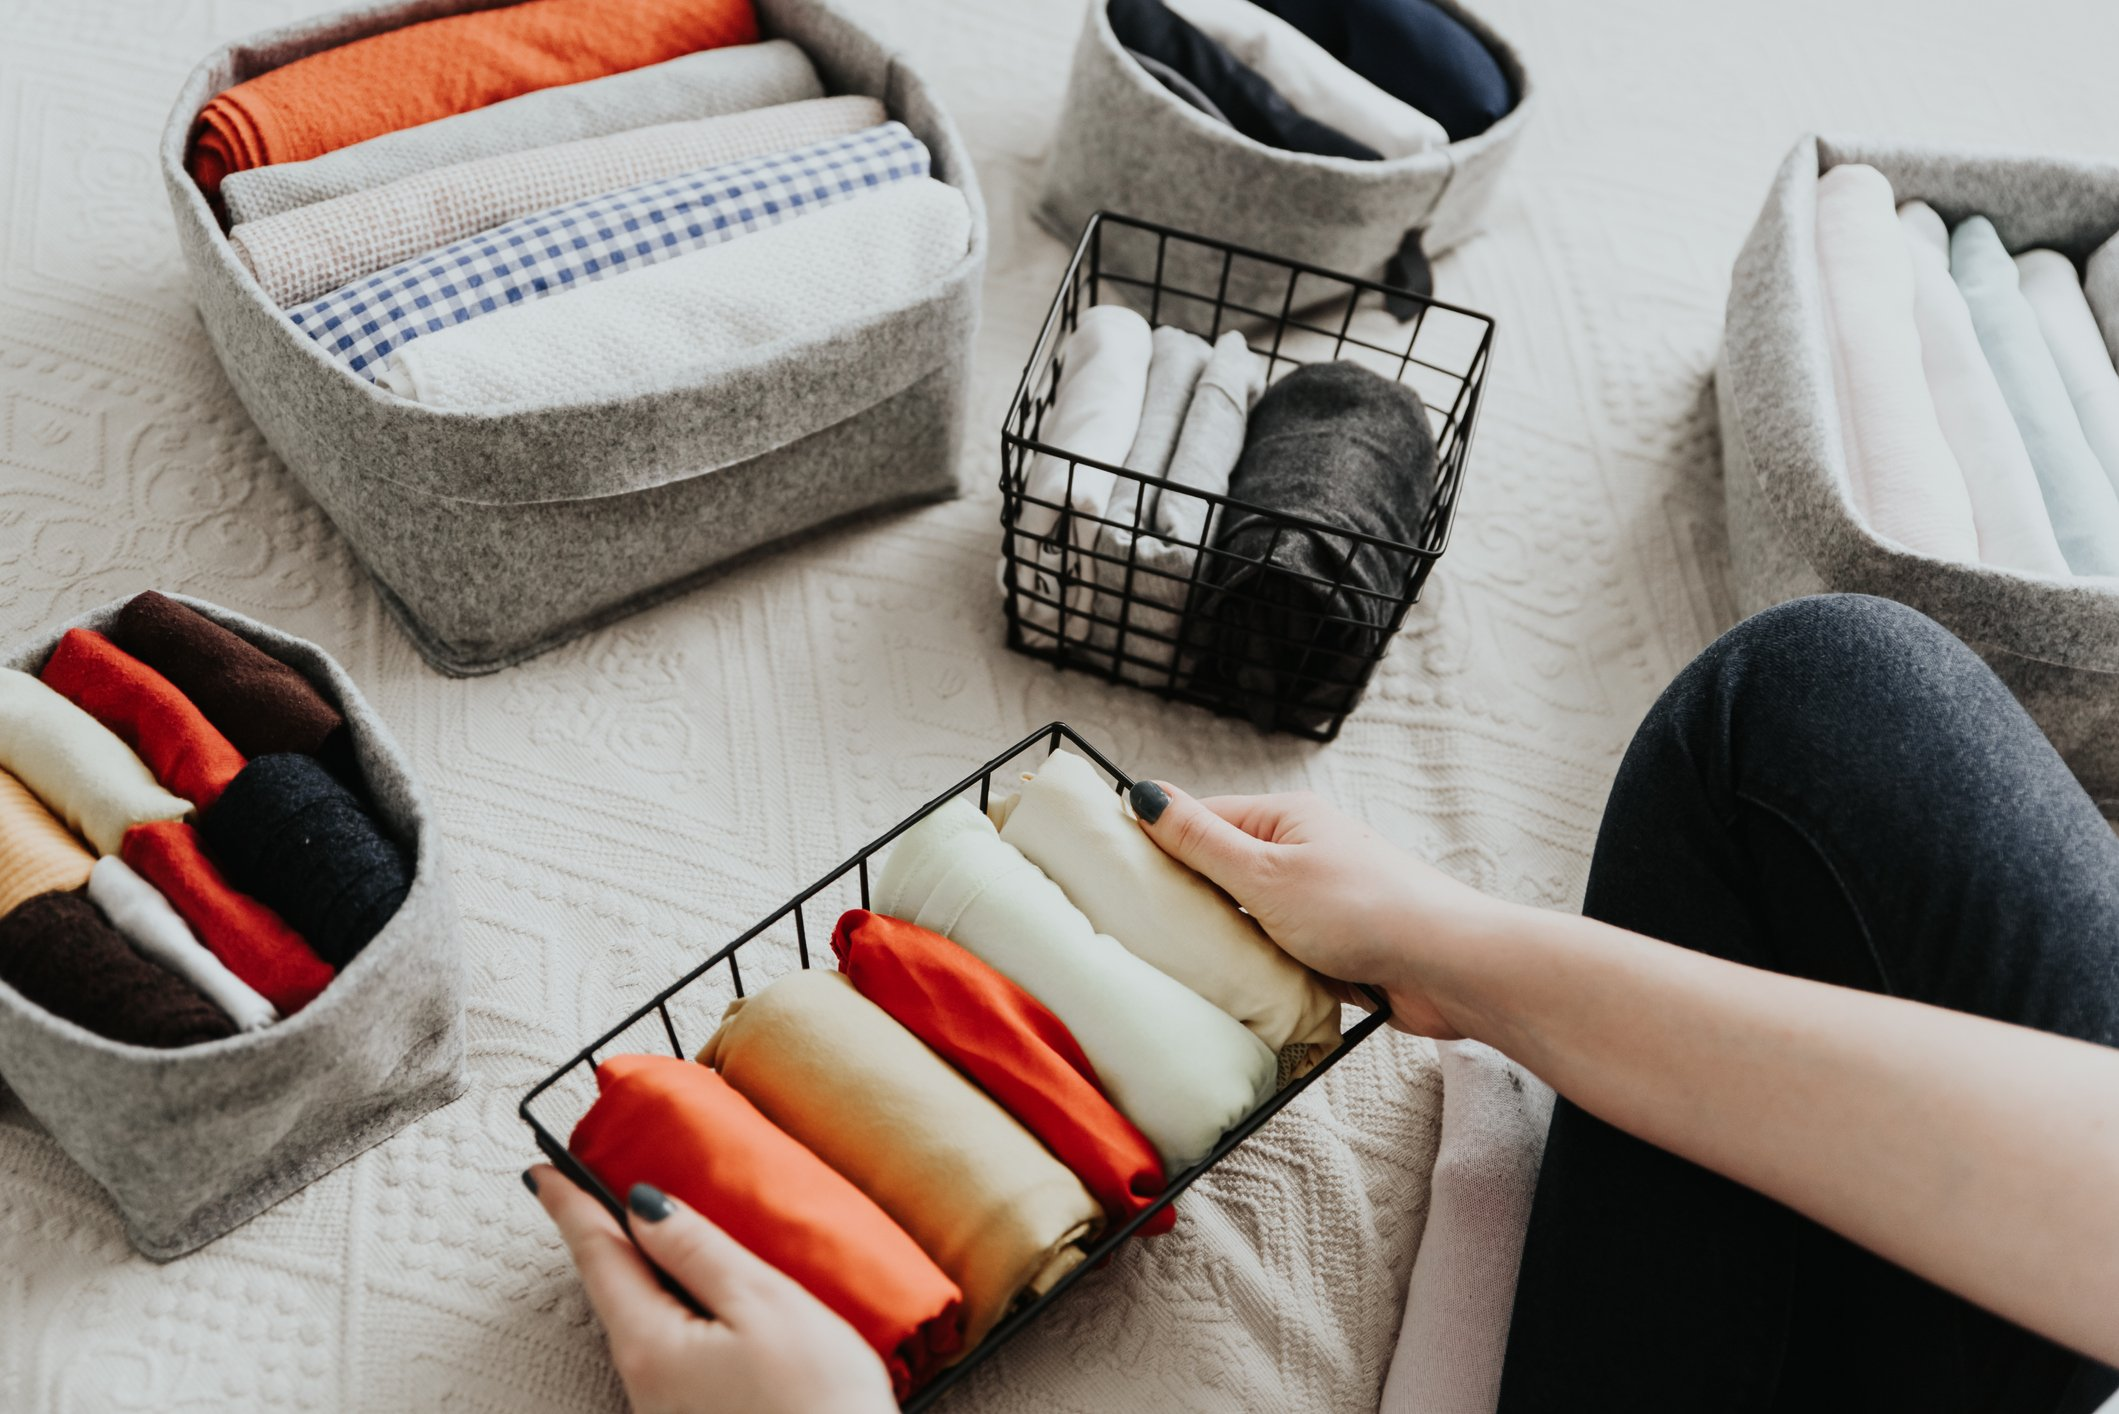 Wardrobe storage system. Clean up clothes with konmari method (Marie Kondo). Clothes neatly folded in bedroom